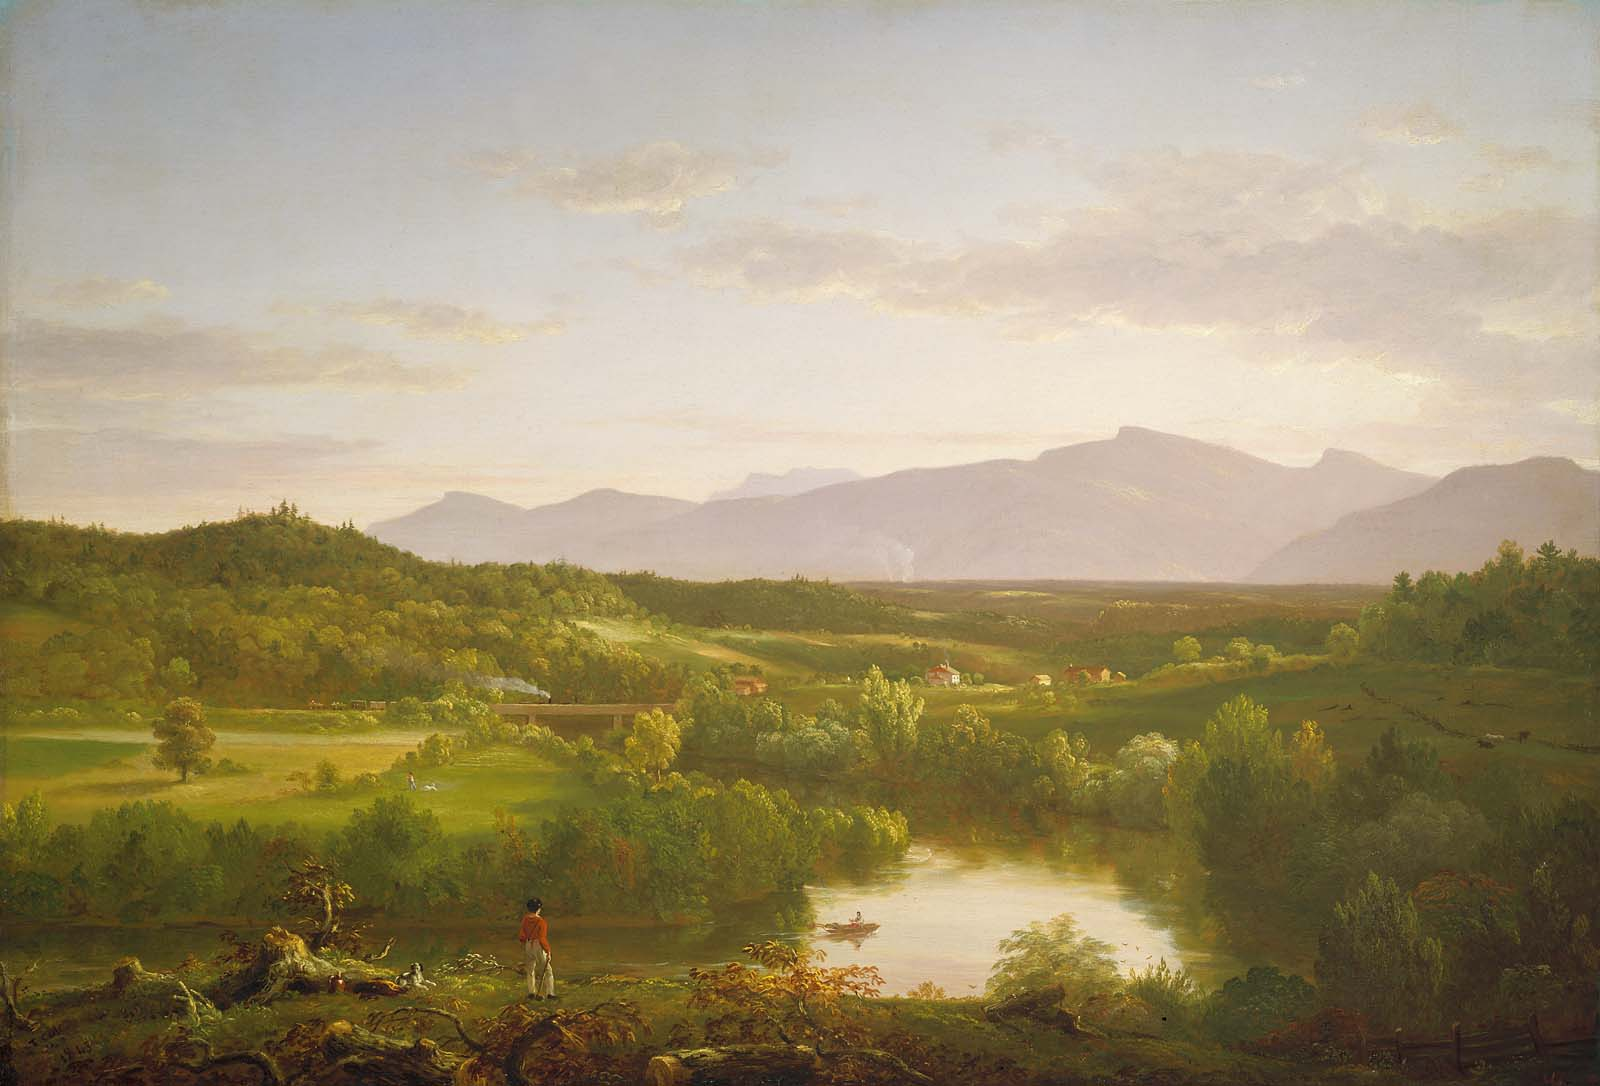 Essay on american scenery thomas cole summary